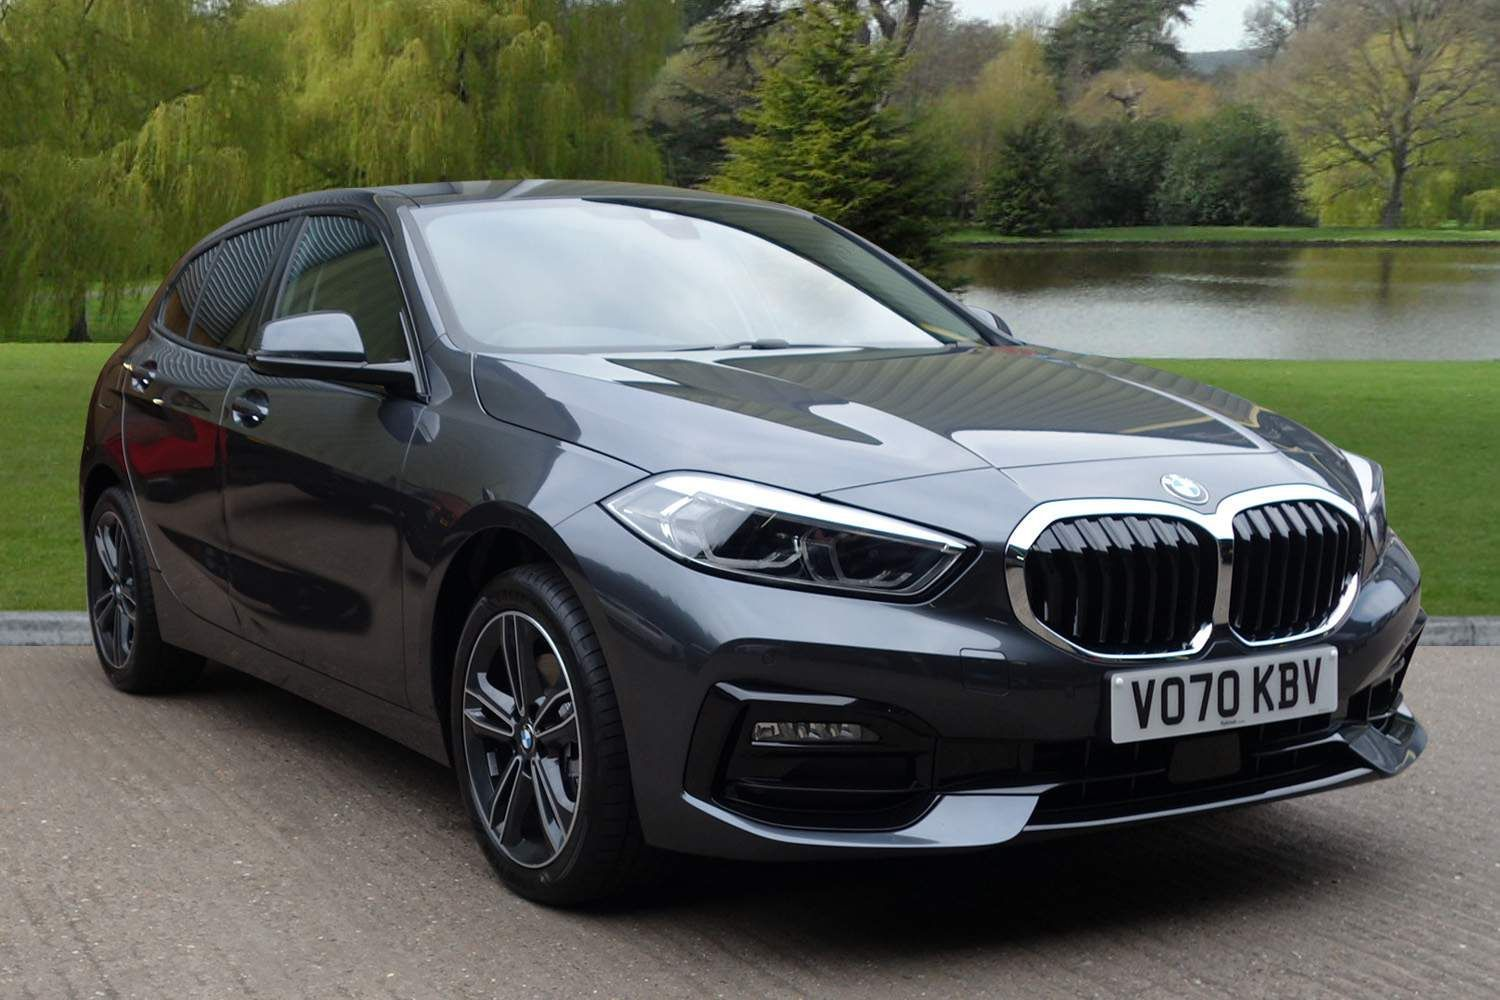 Bmw 1 Series Grey 5dr 2020 For Sale In Warwick Rybrook